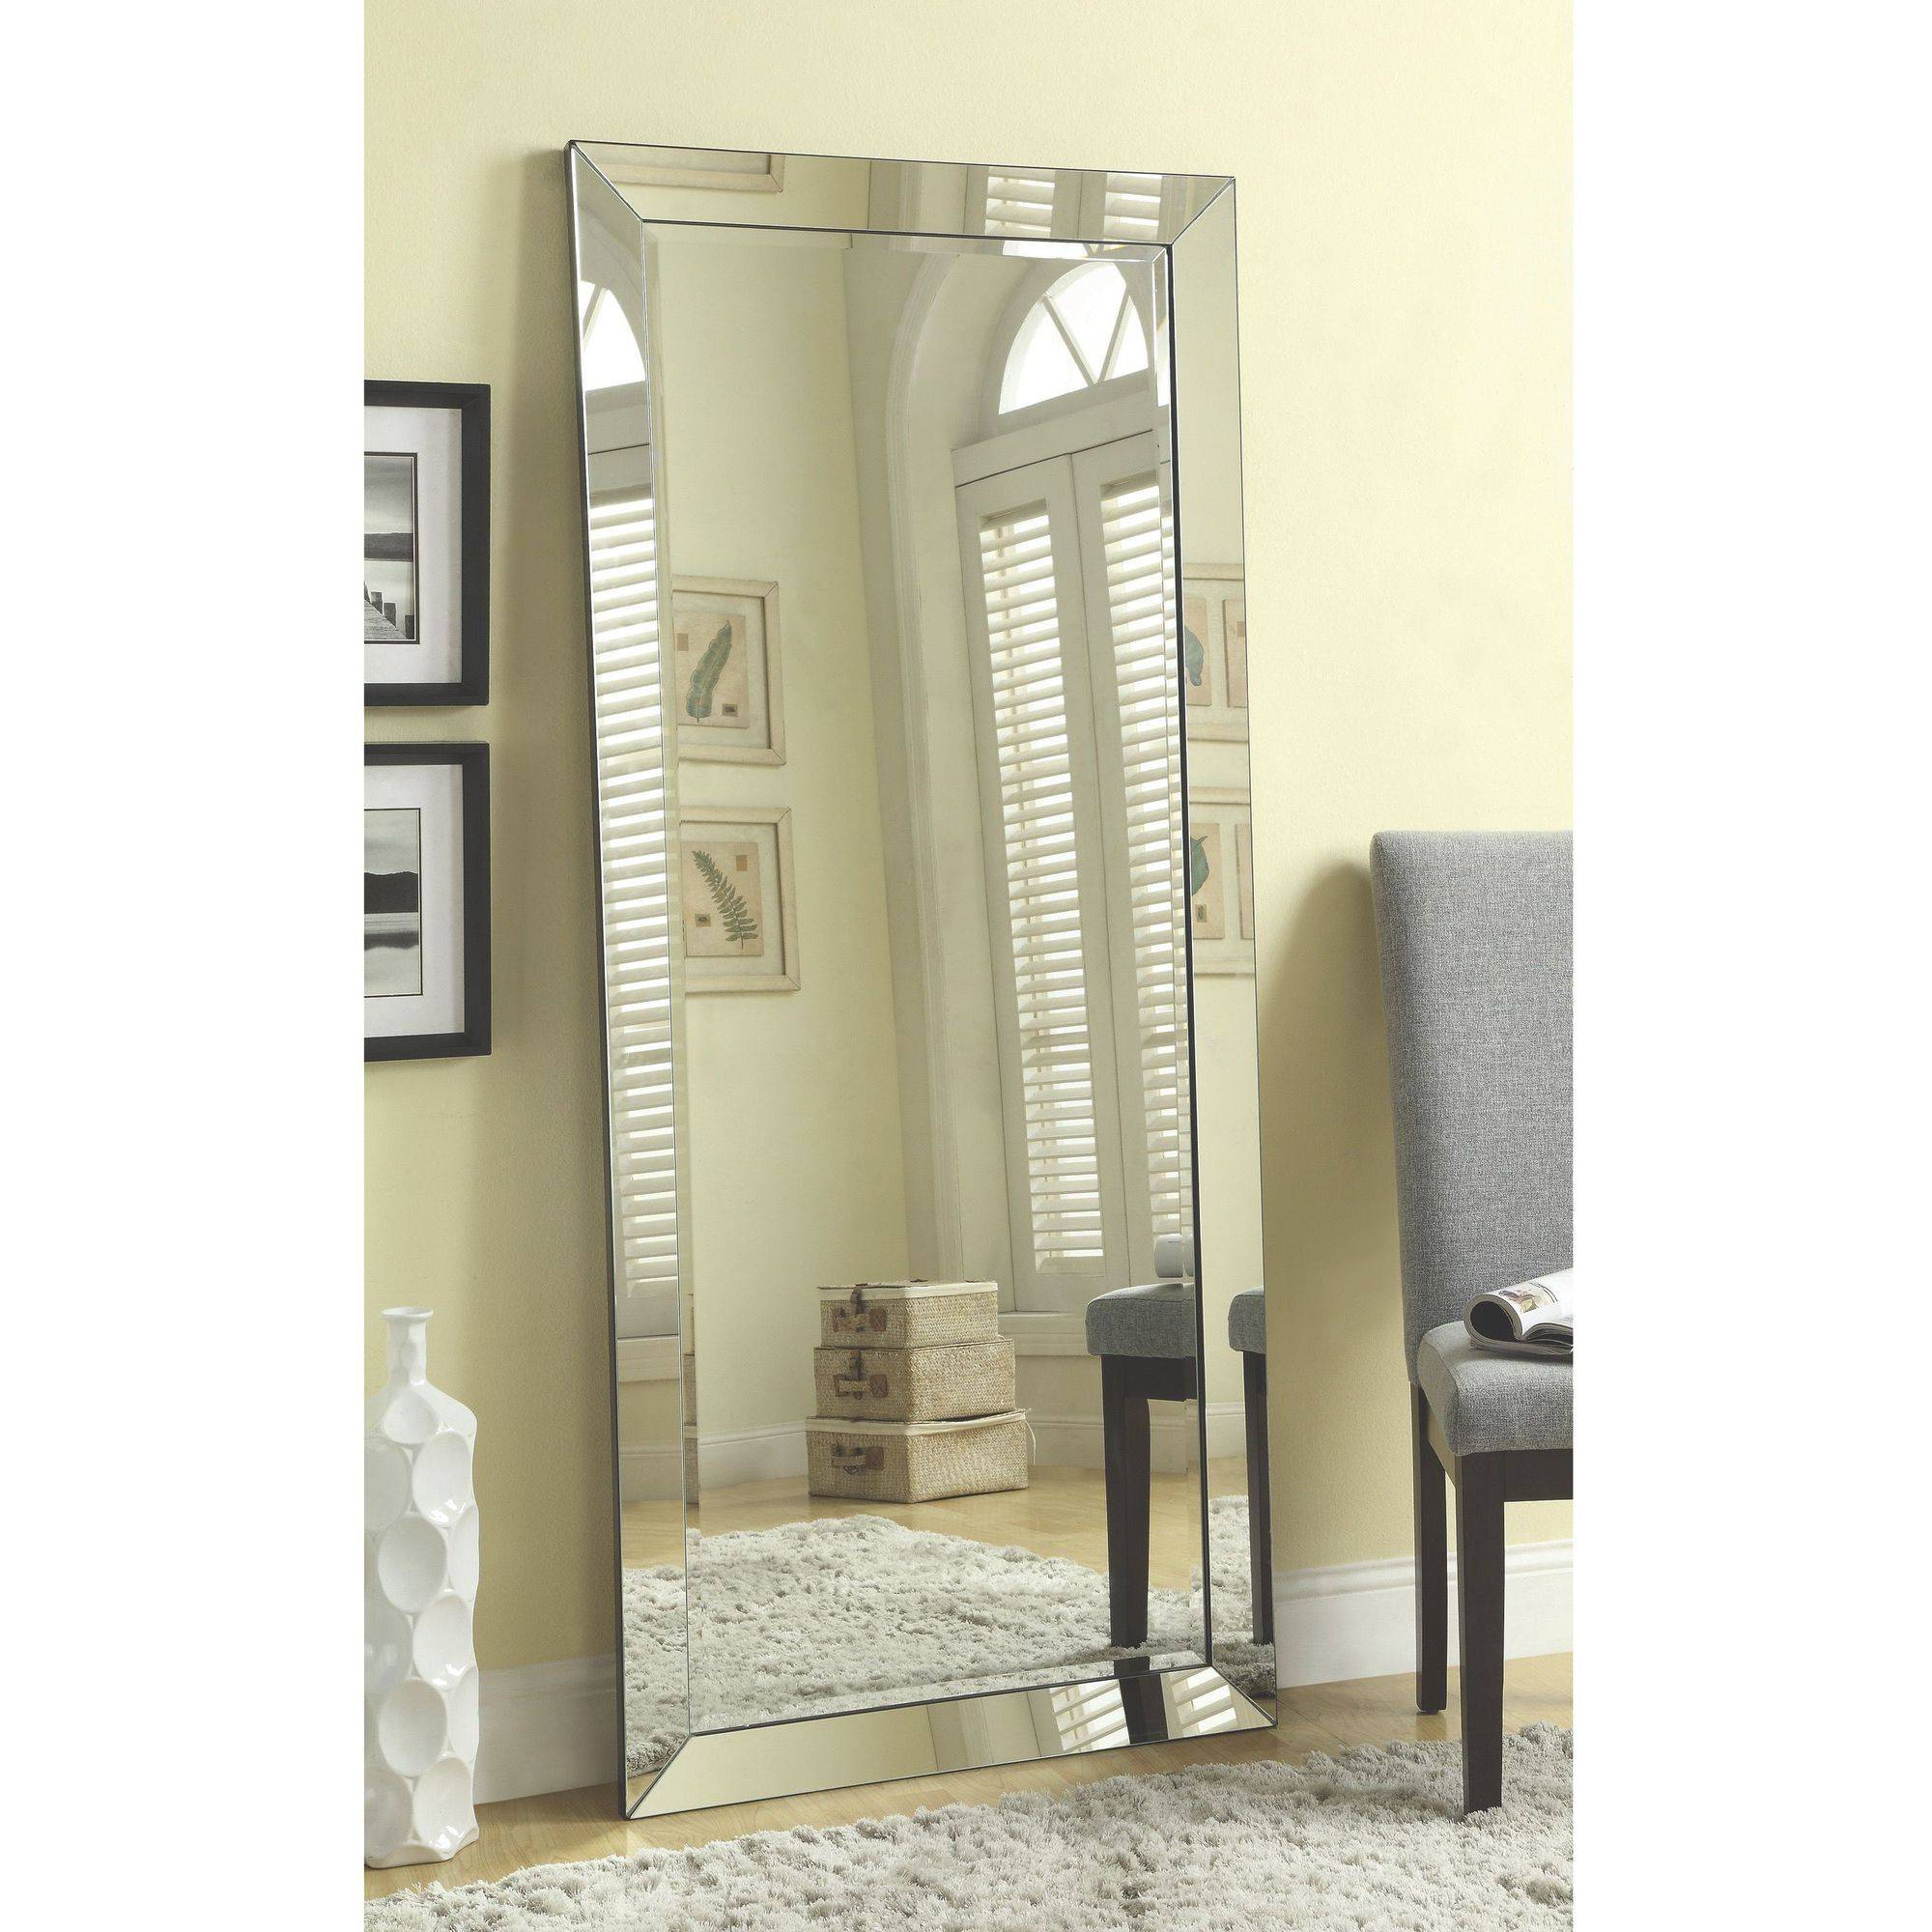 Popular 34 Most Unbeatable Long Wall Mirrors Mirror No Frame Large Frameless In Large Full Length Wall Mirrors (View 17 of 20)